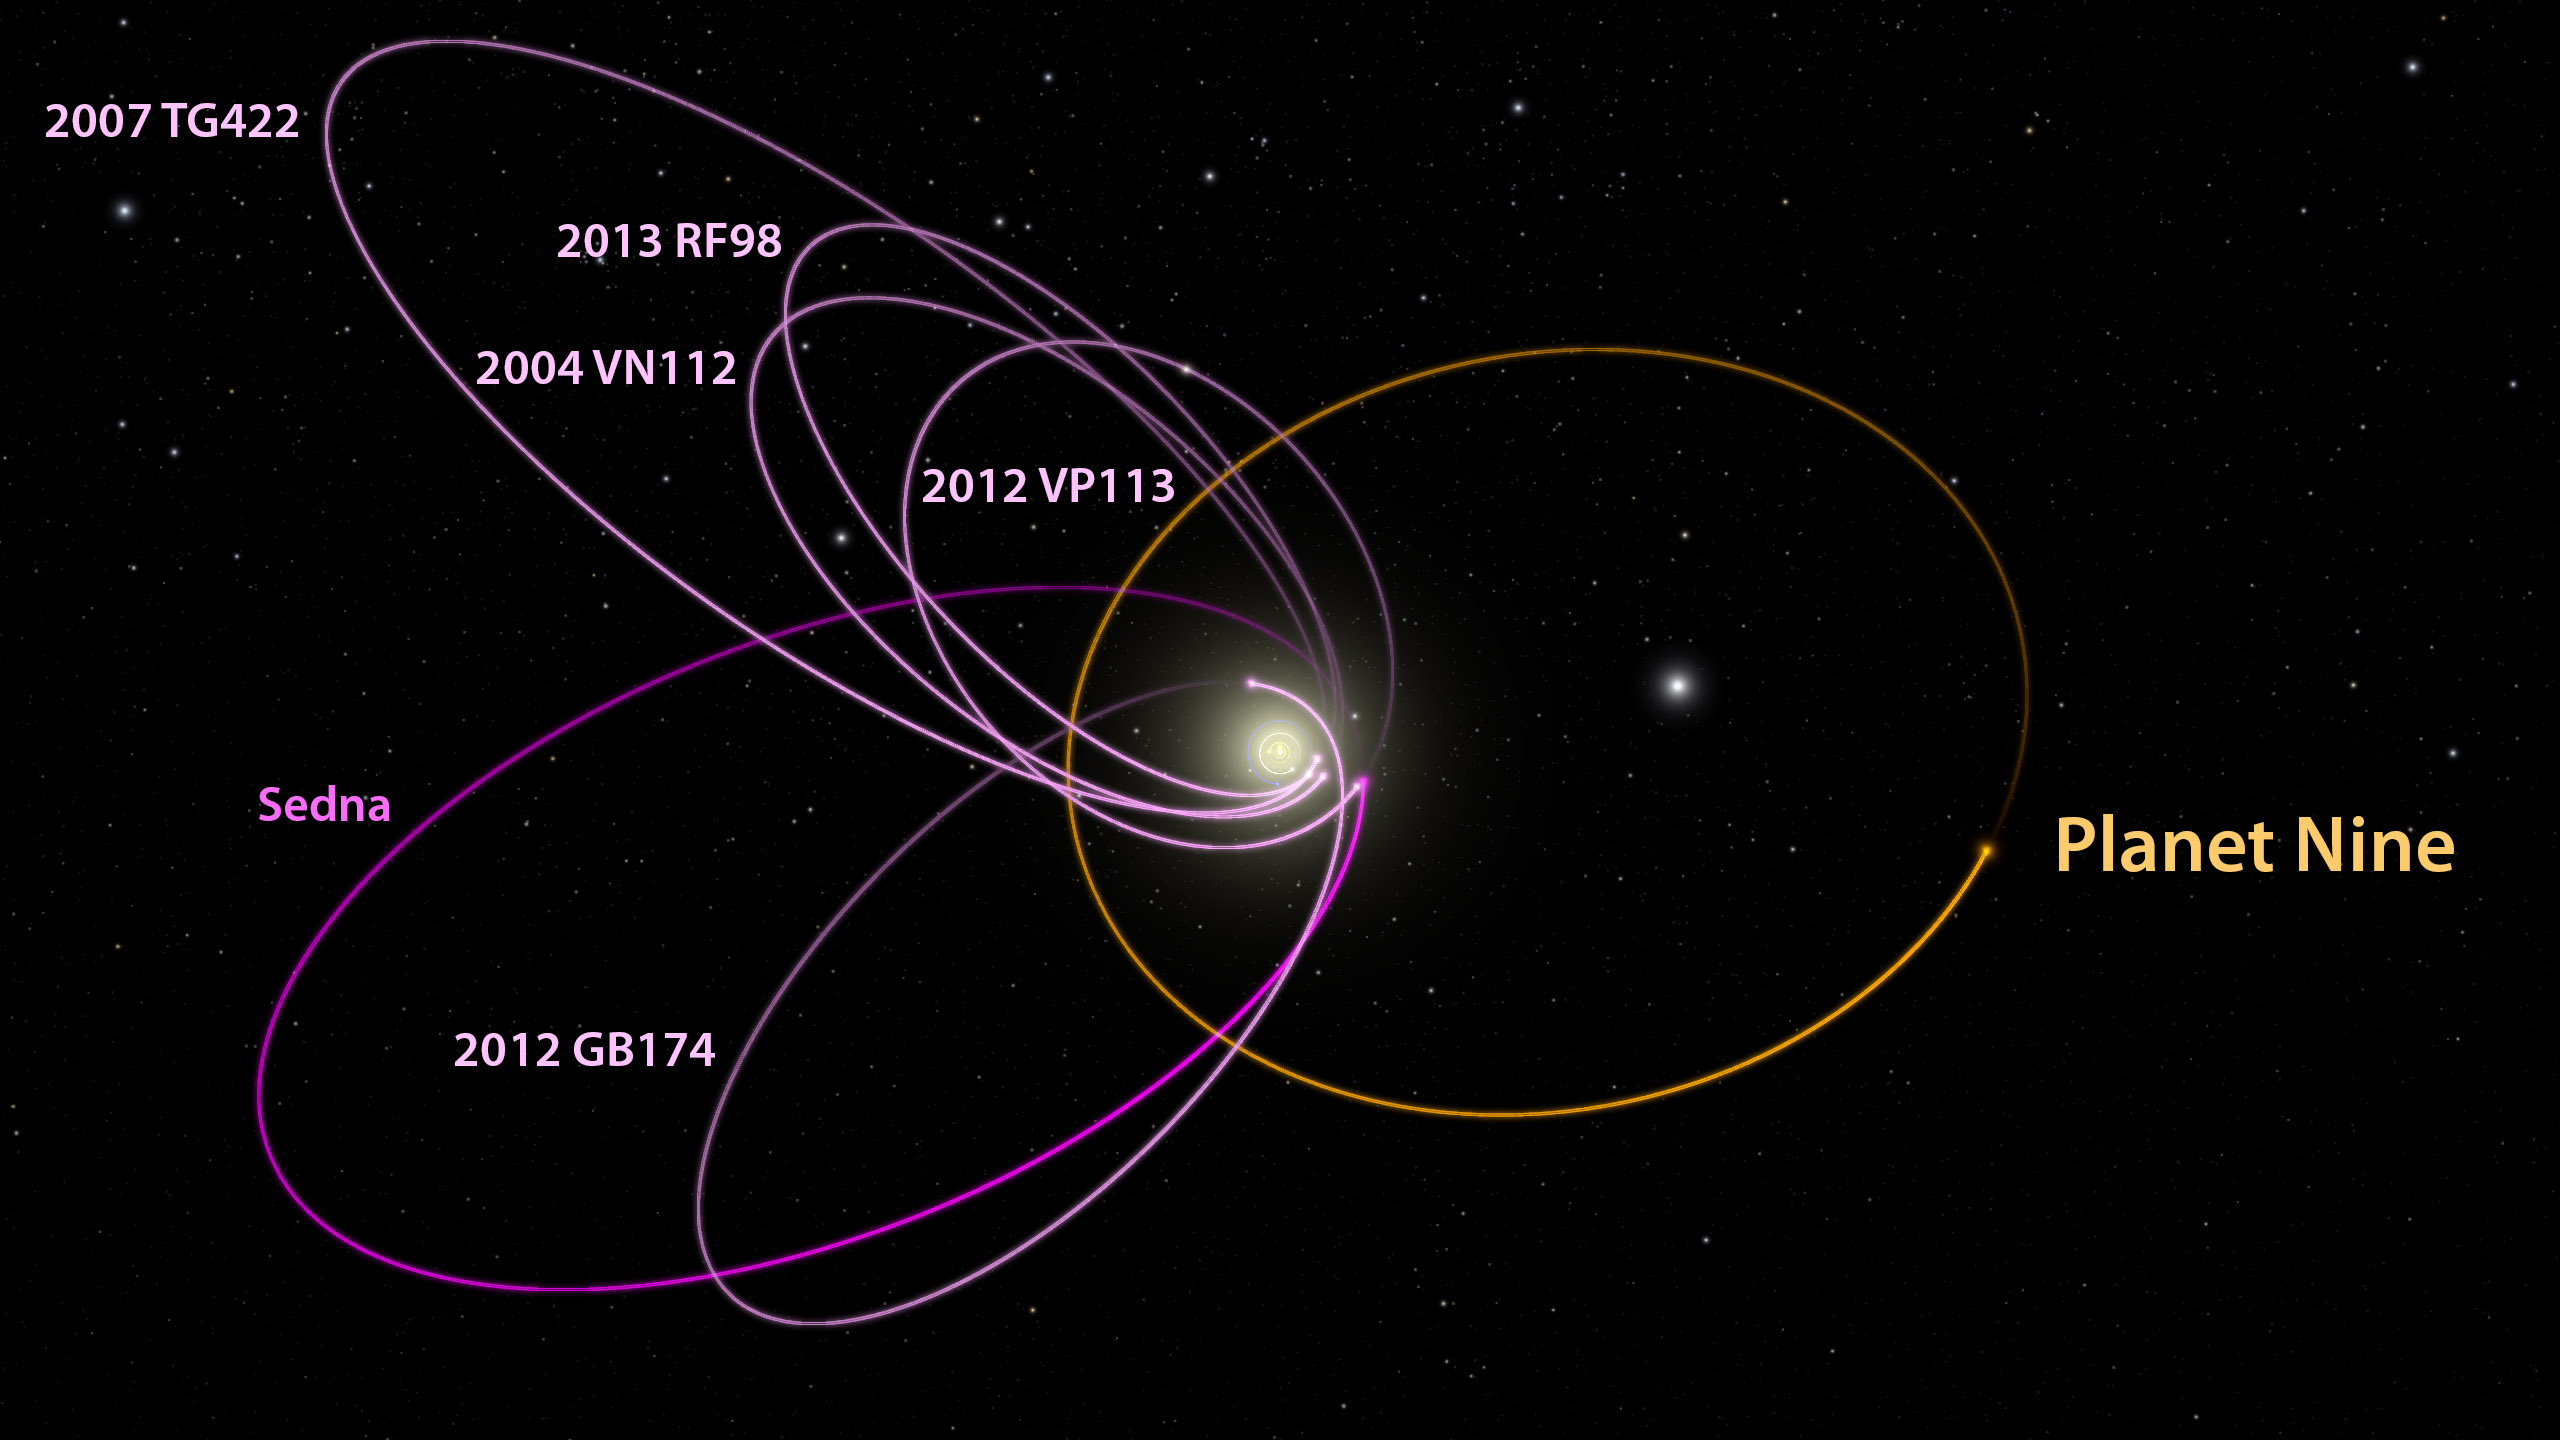 This image shows the strange, aligning orbits of six distant objects, evidence that our solar system has a ninth planet.